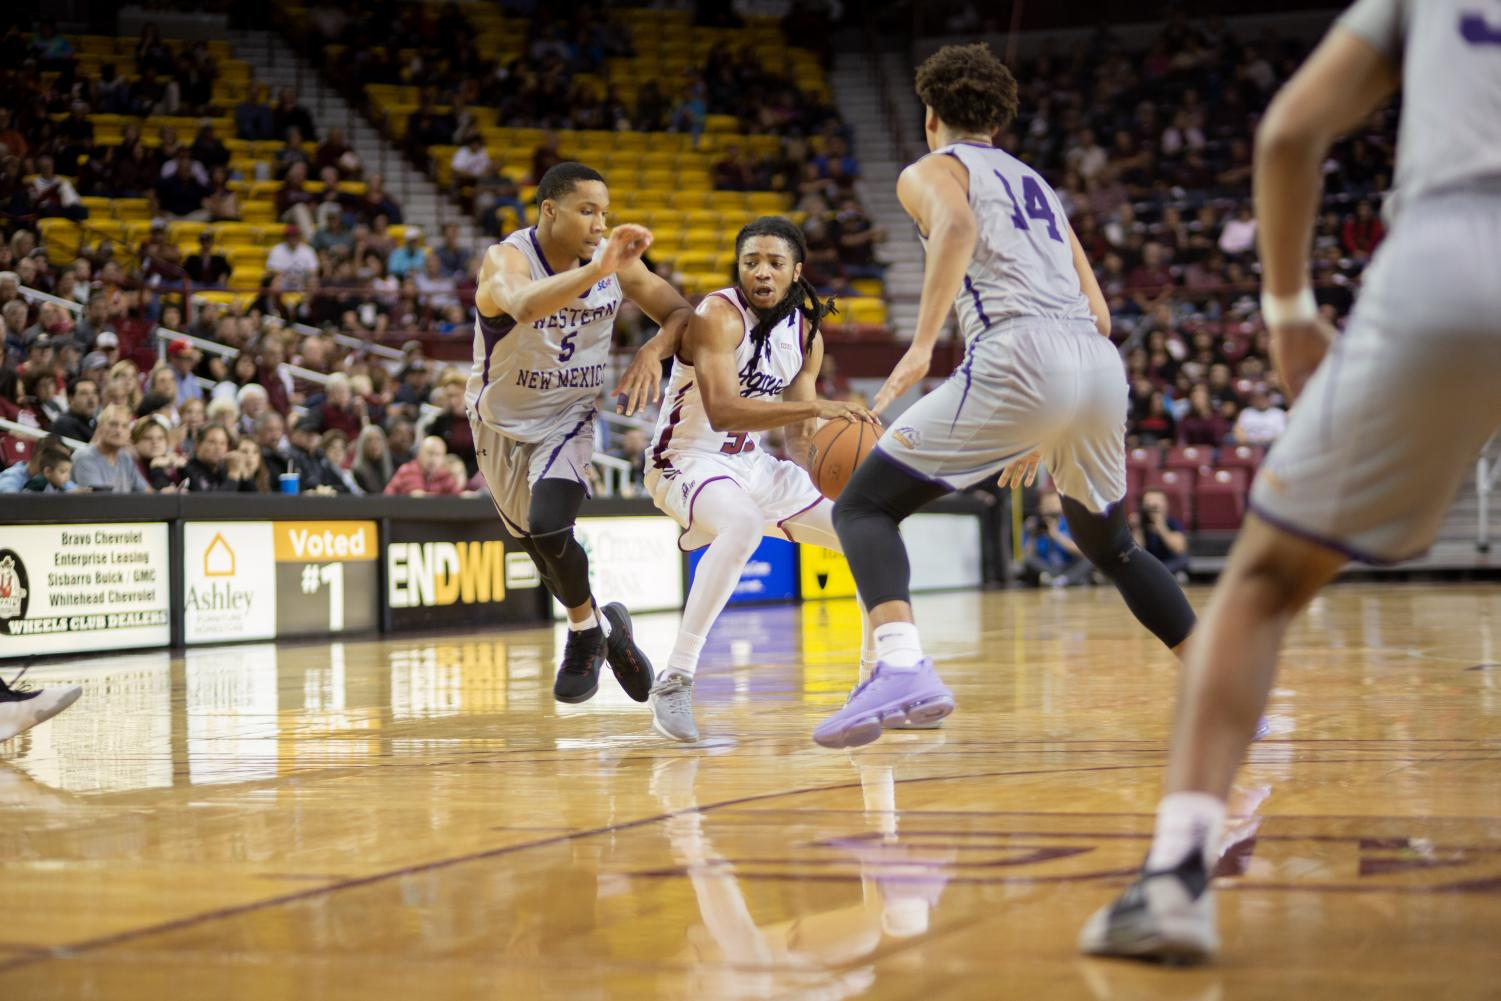 Shawn Williams drives to the basket in his first start at New Mexico State.